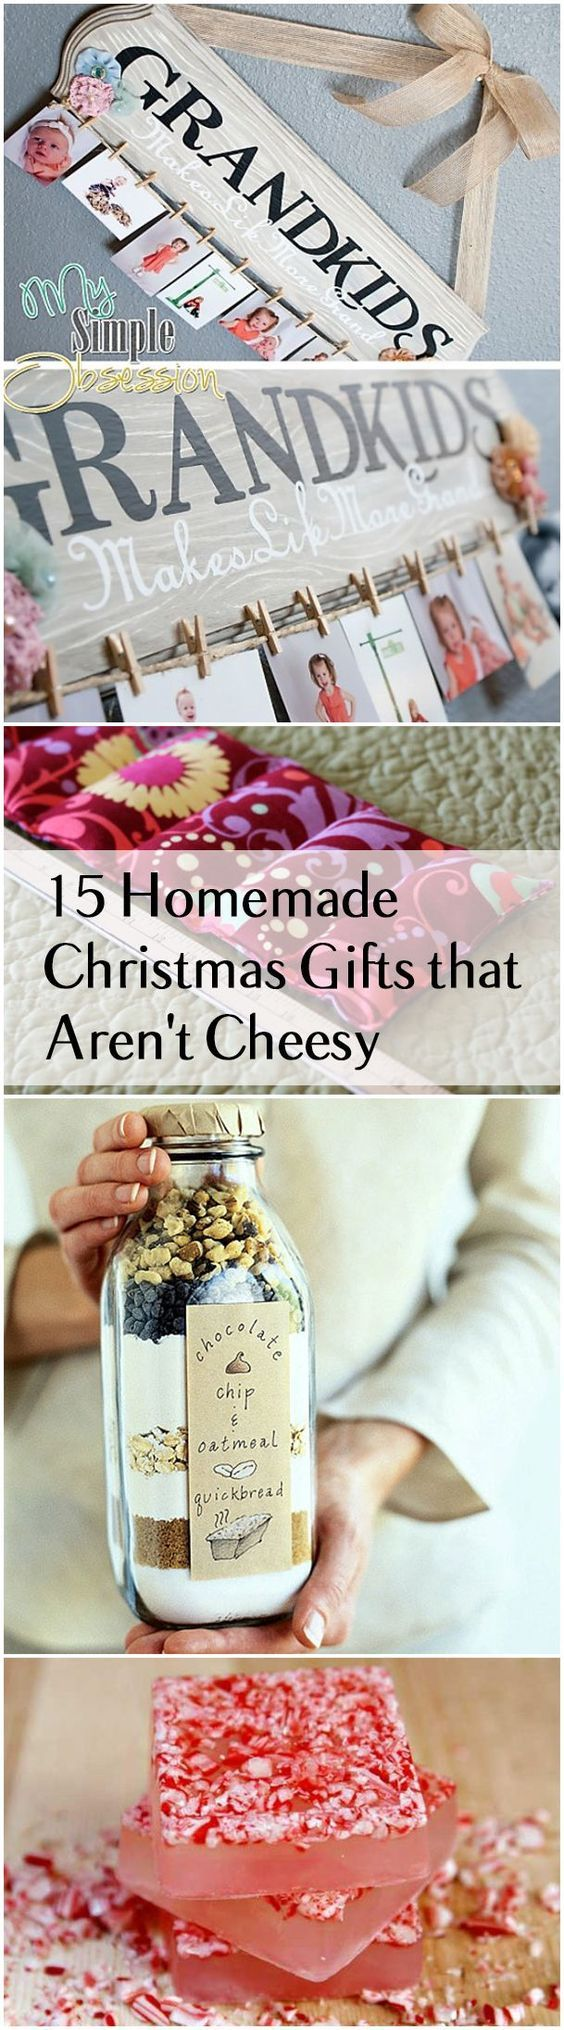 15 homemade christmas gifts that arent cheesy articles gift christmas 2017 solutioingenieria Gallery